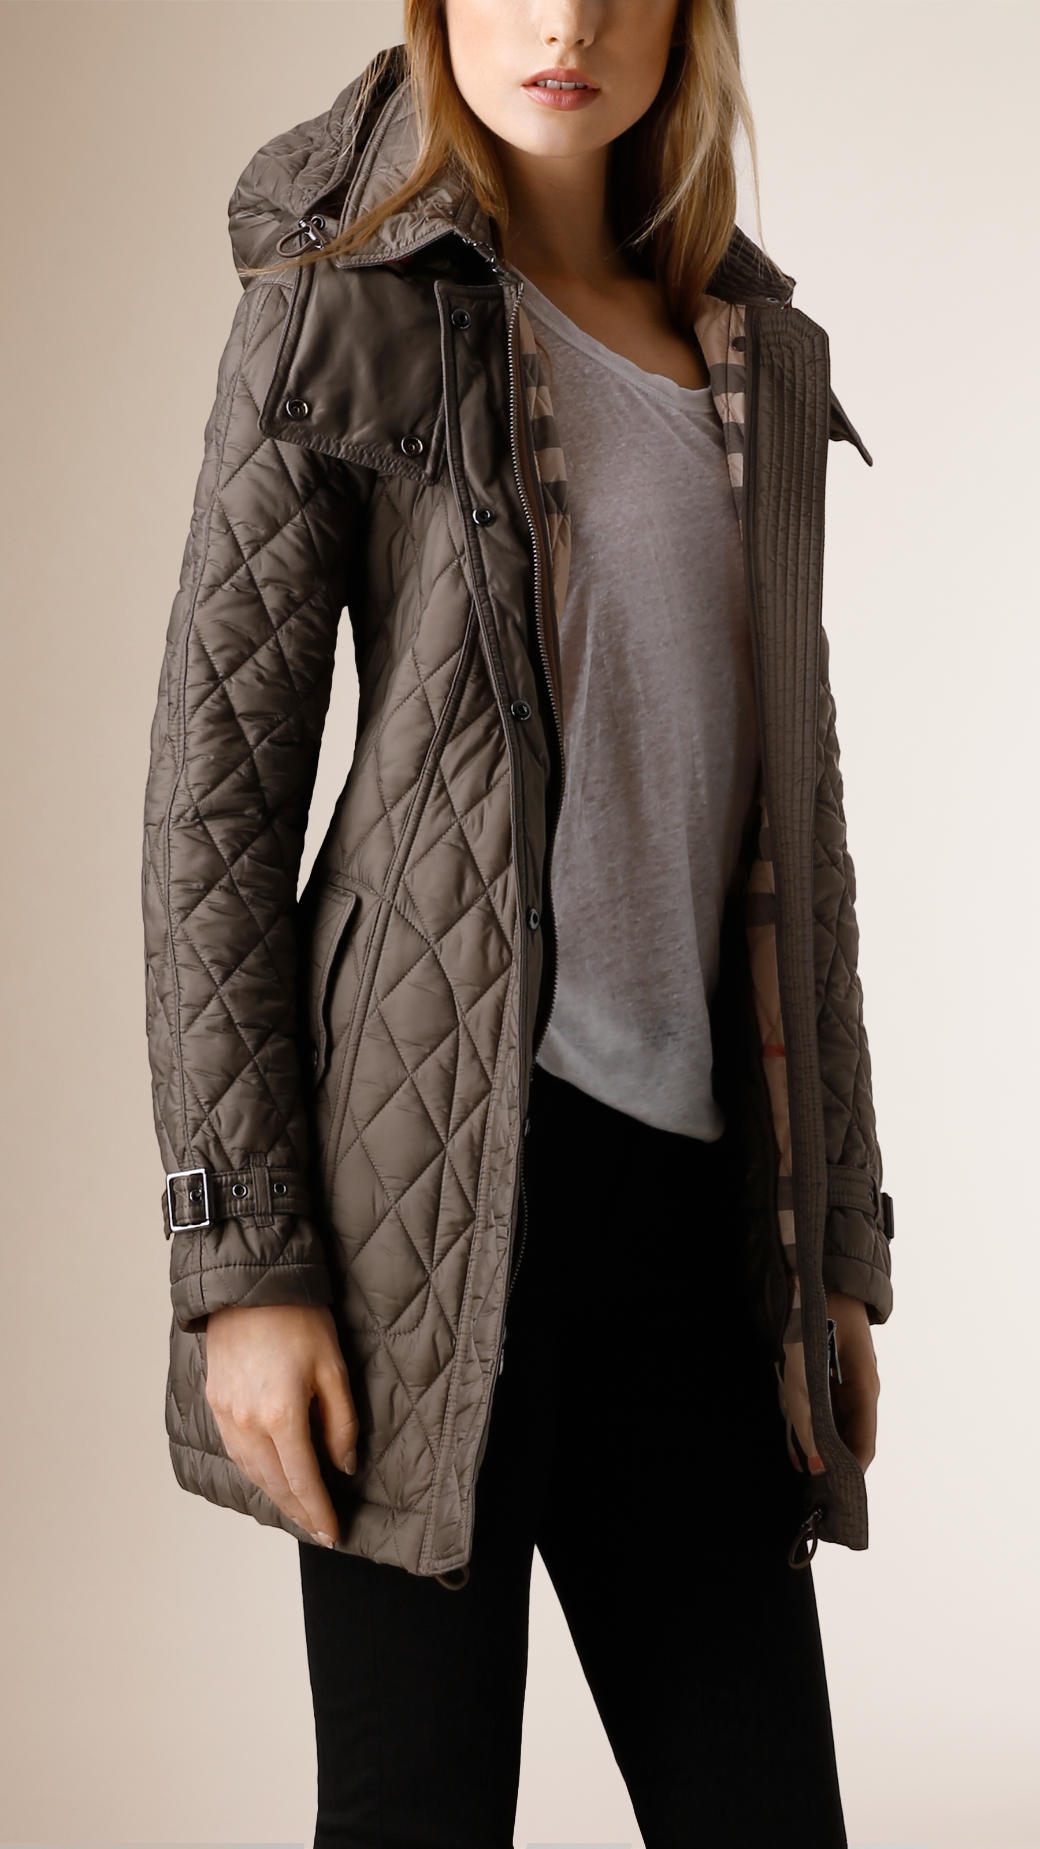 Lyst - Burberry Diamond Quilted Coat in Gray : burberry quilted belted jacket - Adamdwight.com